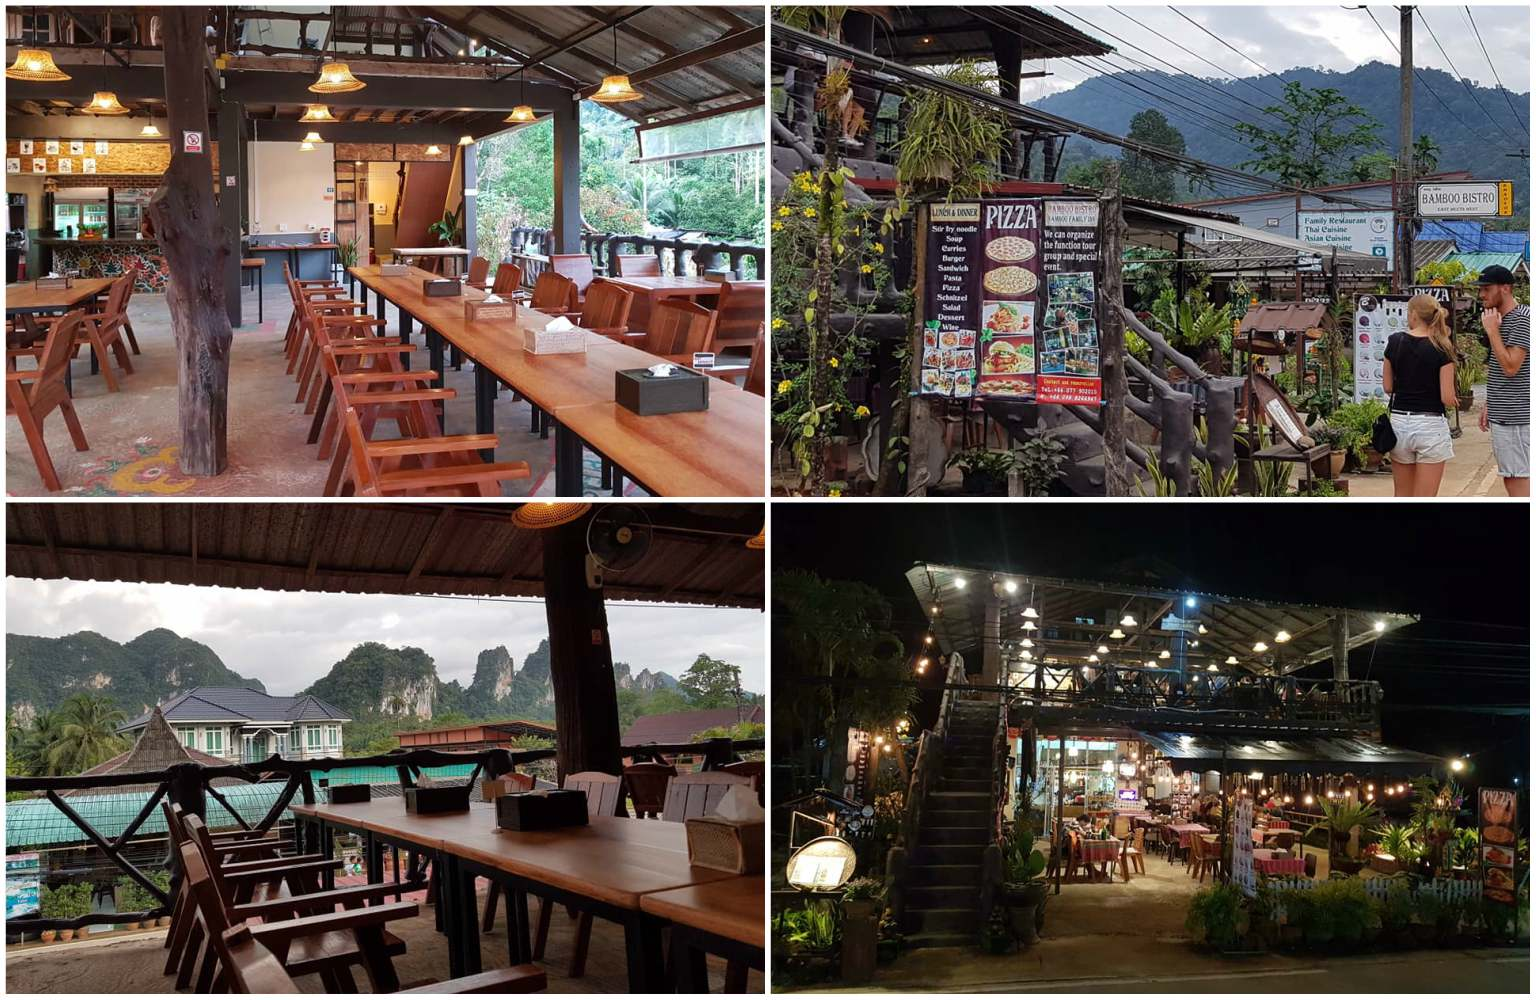 Collage of Bamboo Bistro in Khao Sok, Thailand The interior of Bamboo Bistro downstairs and upstairs, plus the view from above of the mountains of Khao Sok and a picture of the front jug of the restaurant itself.